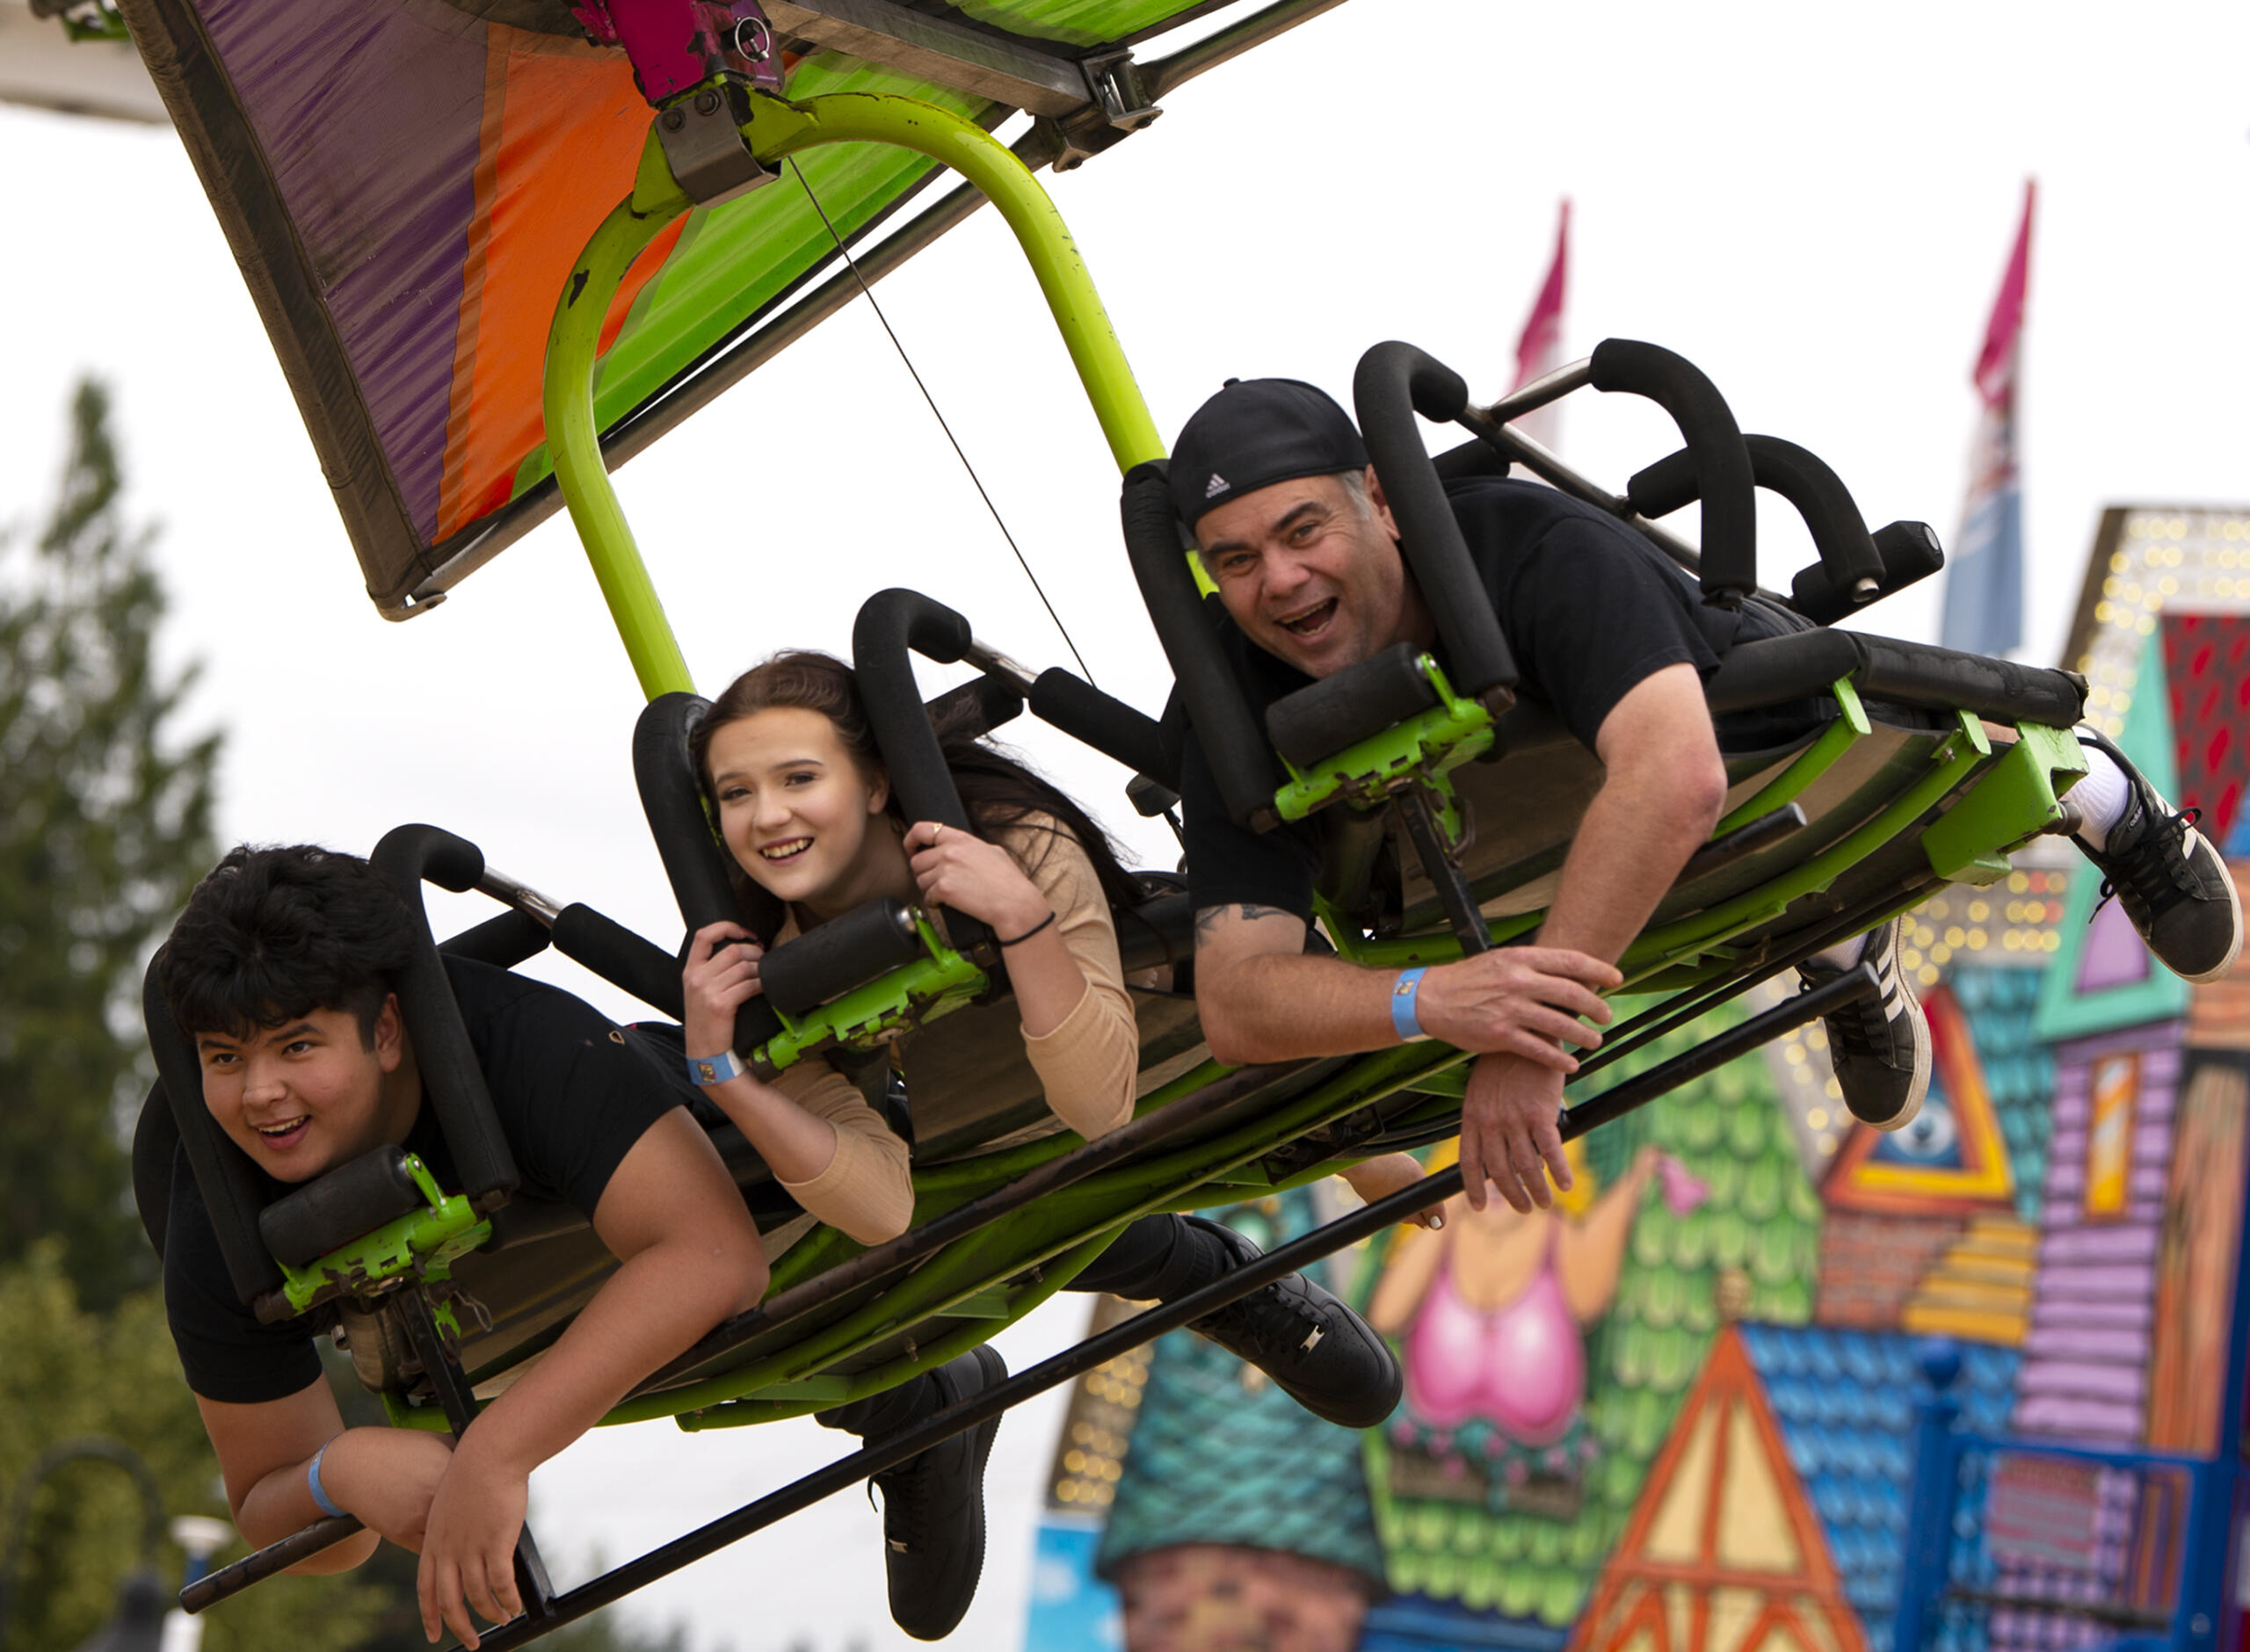 """From left, Jordan Higgins, Kyra Tiaga and Ted Tiaga smileas they ride """"Cliff Hanger"""" during a carnival on Saturday, Aug. 7, 2021, at the Clark County Fairgrounds. While the fair was canceled this year, Clark County Event Center is hosting several events in the Family Fun Series, including a carnival which runs through Aug. 15 and is open until 11 p.m. each night."""